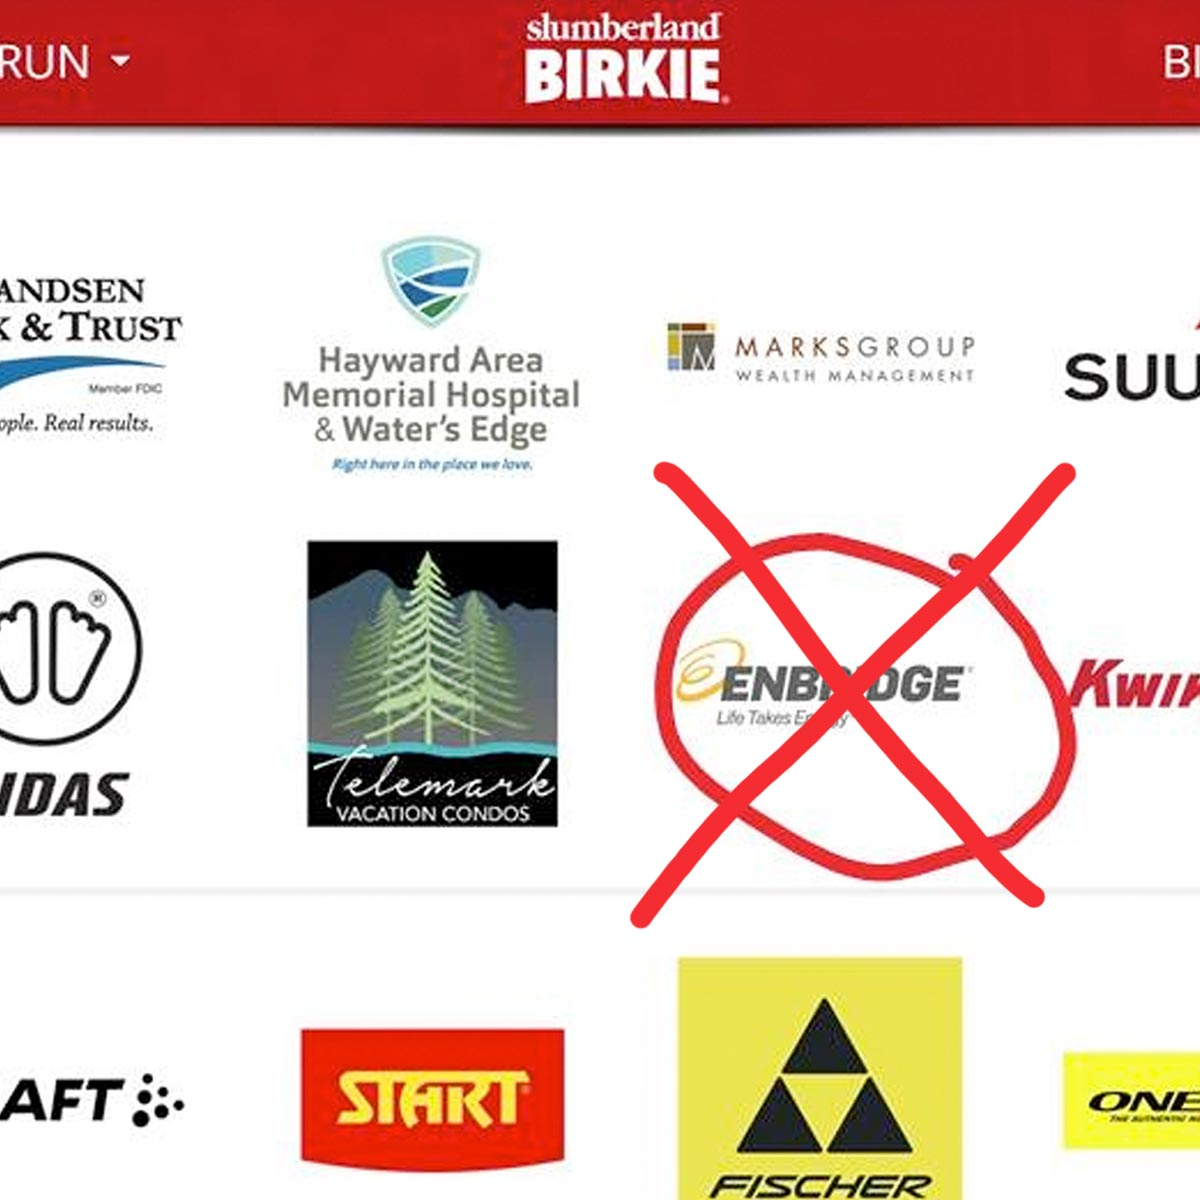 Enbridge Sponsorship Removed from Birkie 2021